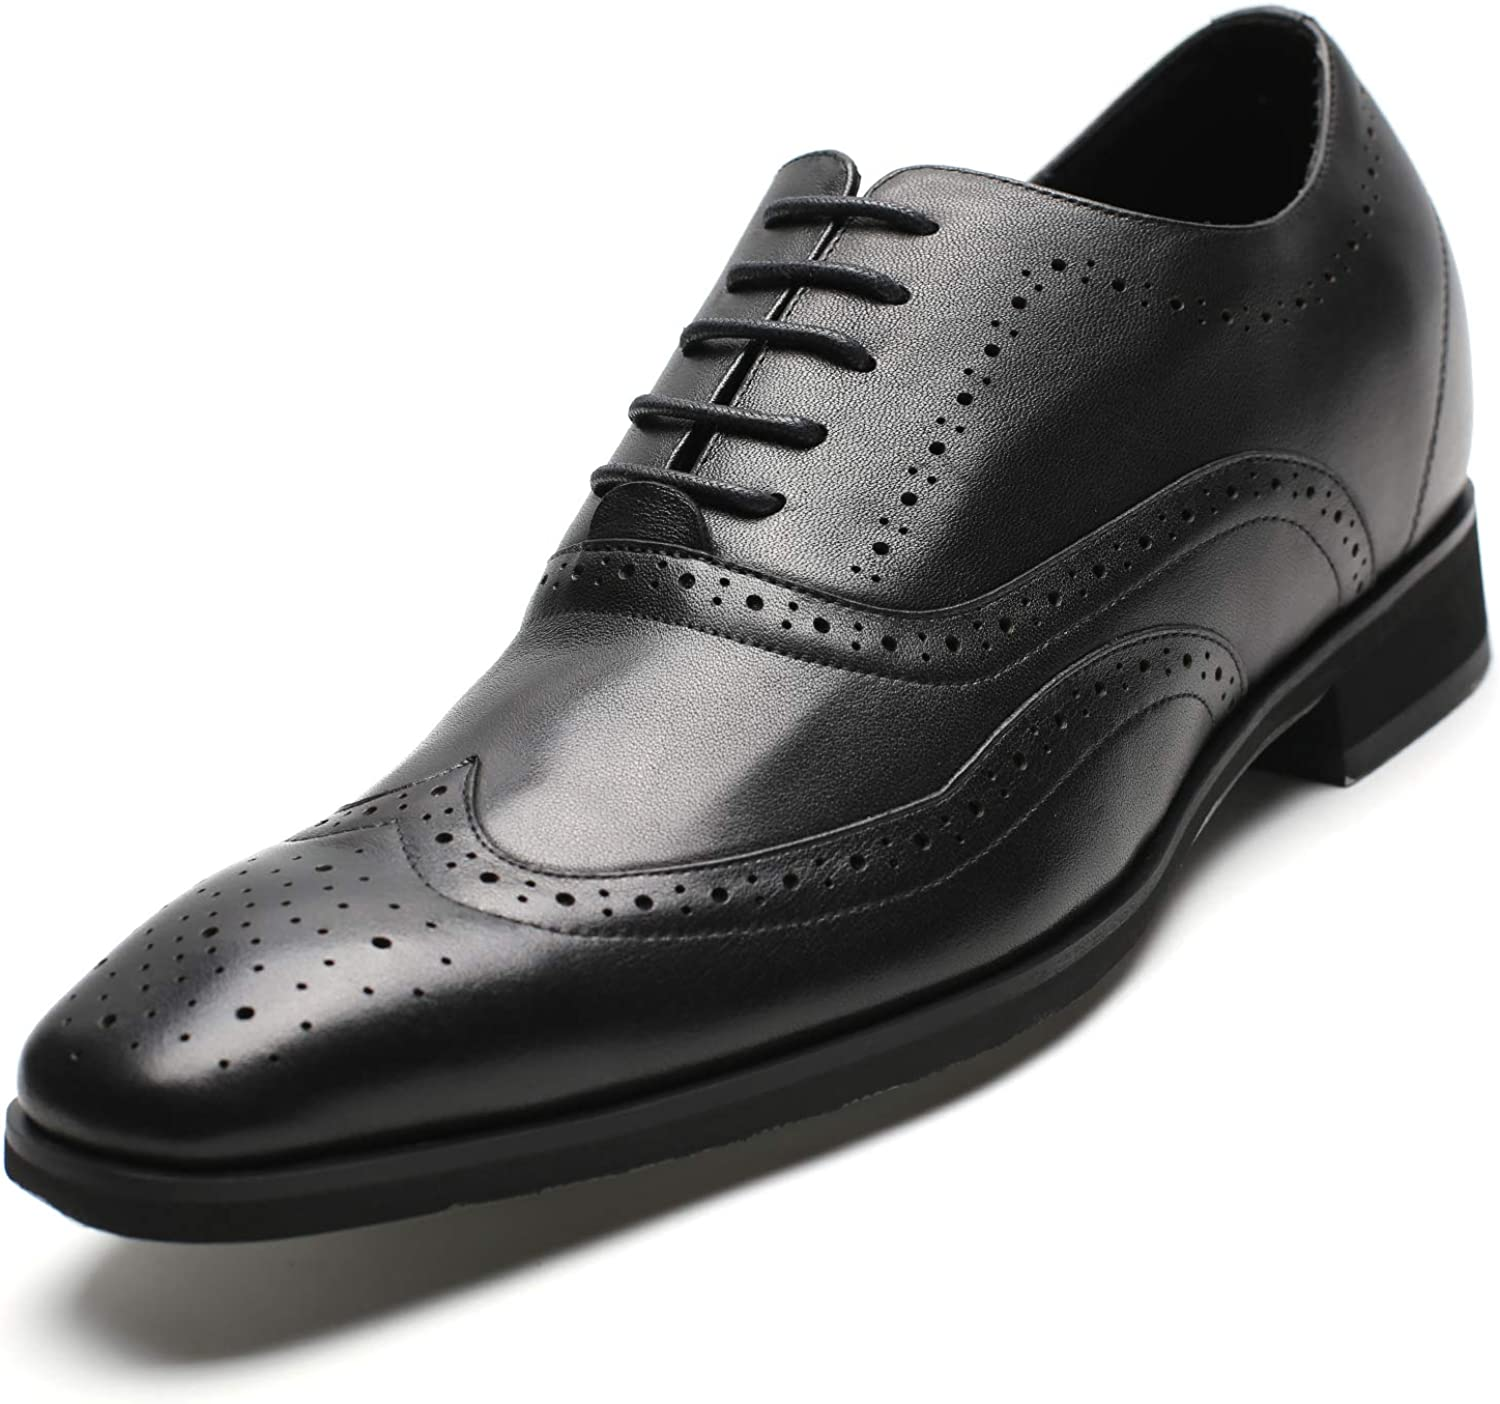 CHAMARIPA Men's Invisible Height Increasing Elevator Shoes-Brogue Formal Oxford Tuxedo Dress Shoes Genuine Leather-2.76 Inches Taller H91K65D221D